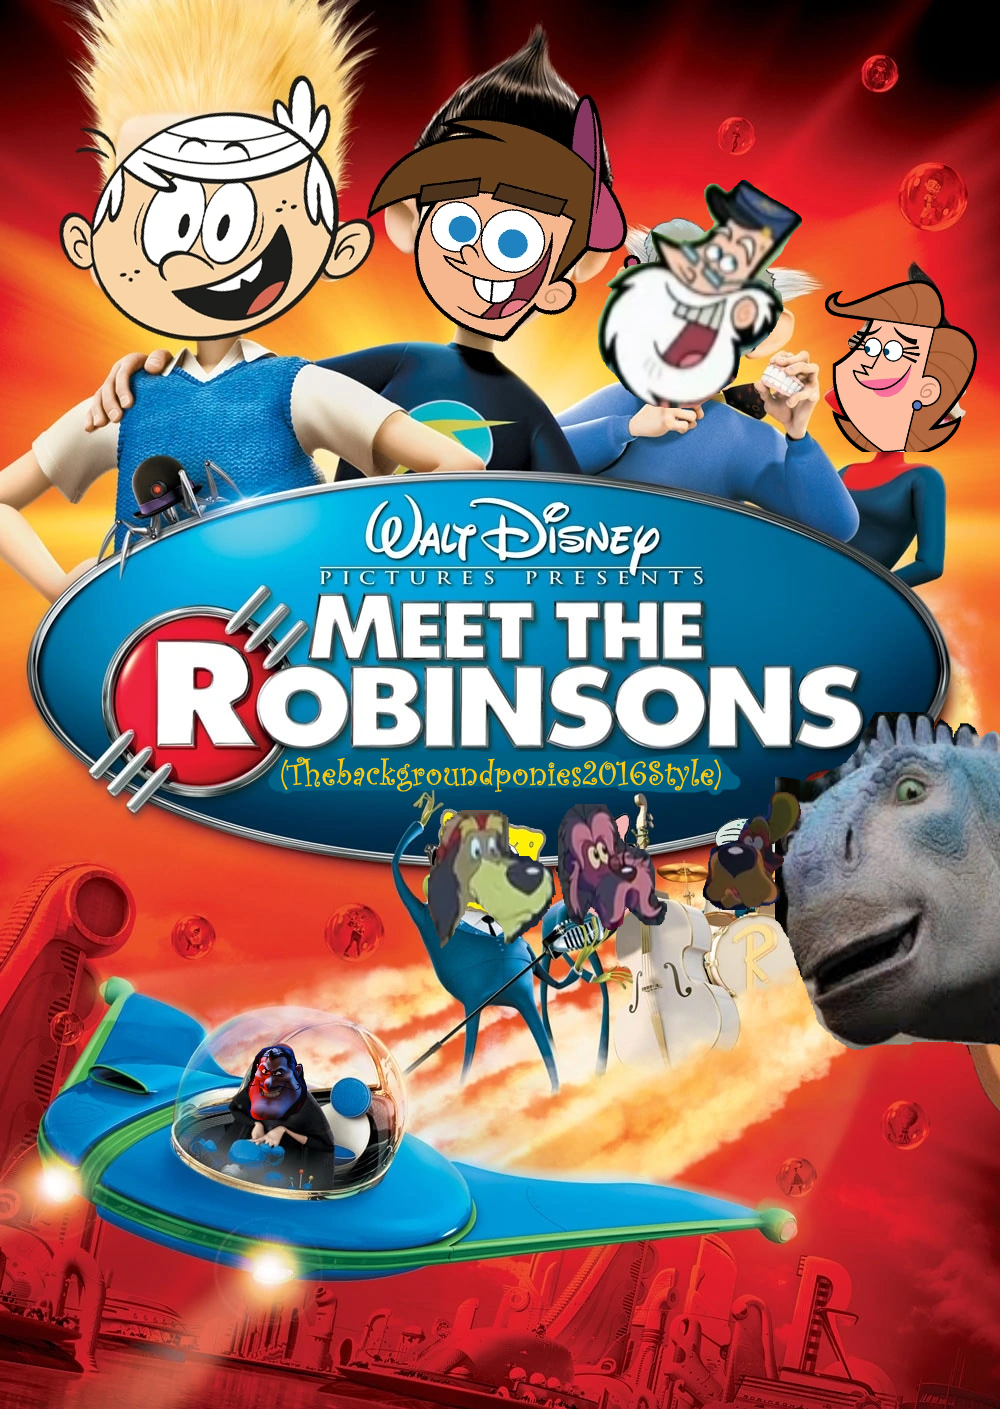 Meet the Robinsons (Thebackgroundponies2016Style)